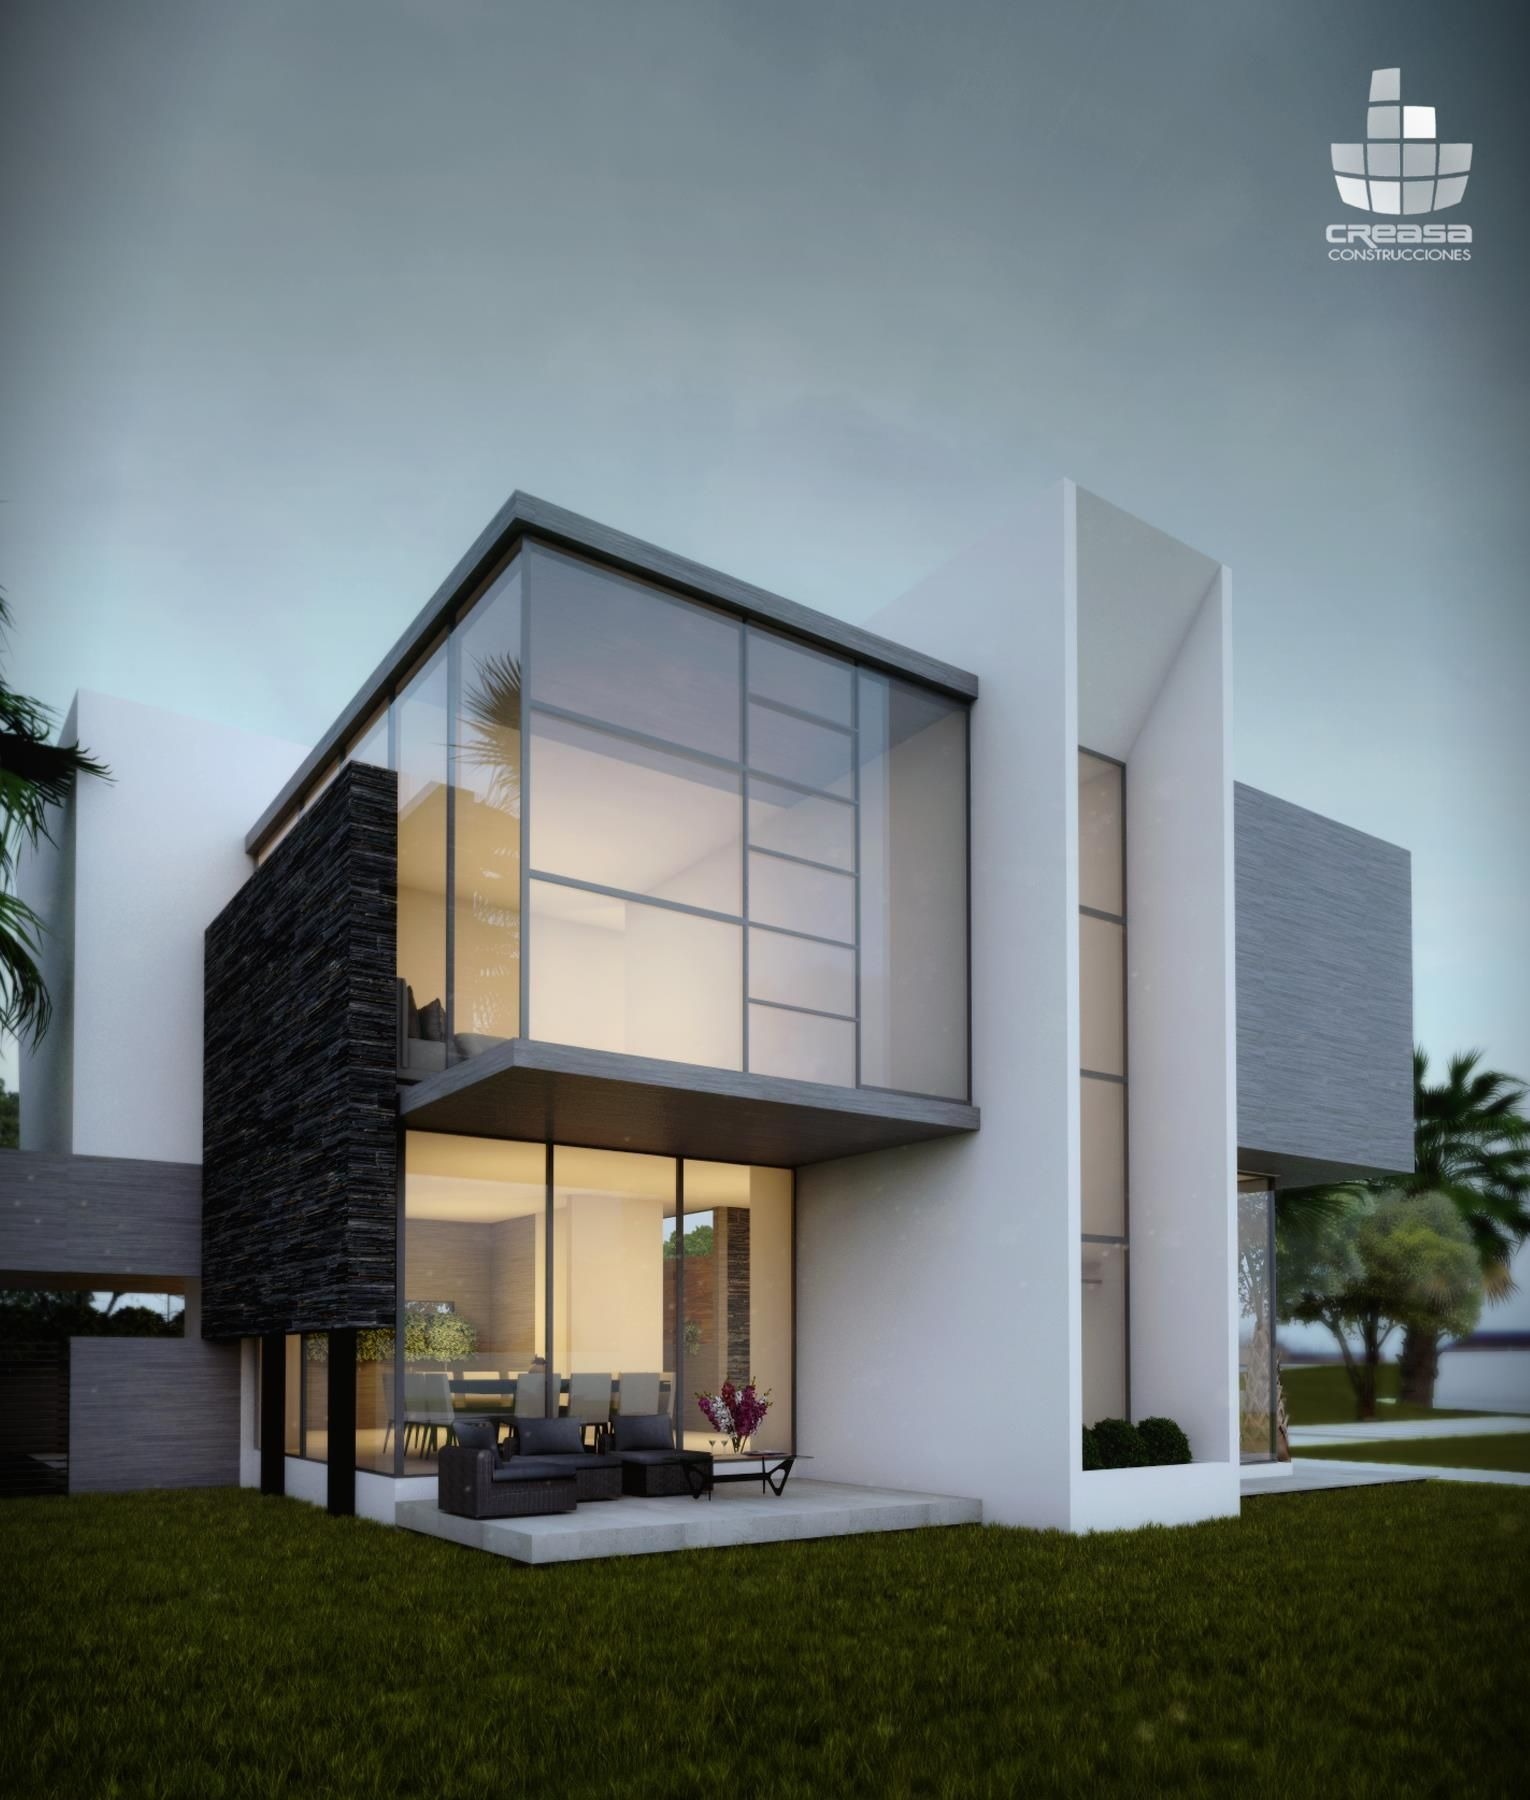 Creasa modern architecture pinterest villas house for Modern building architecture design